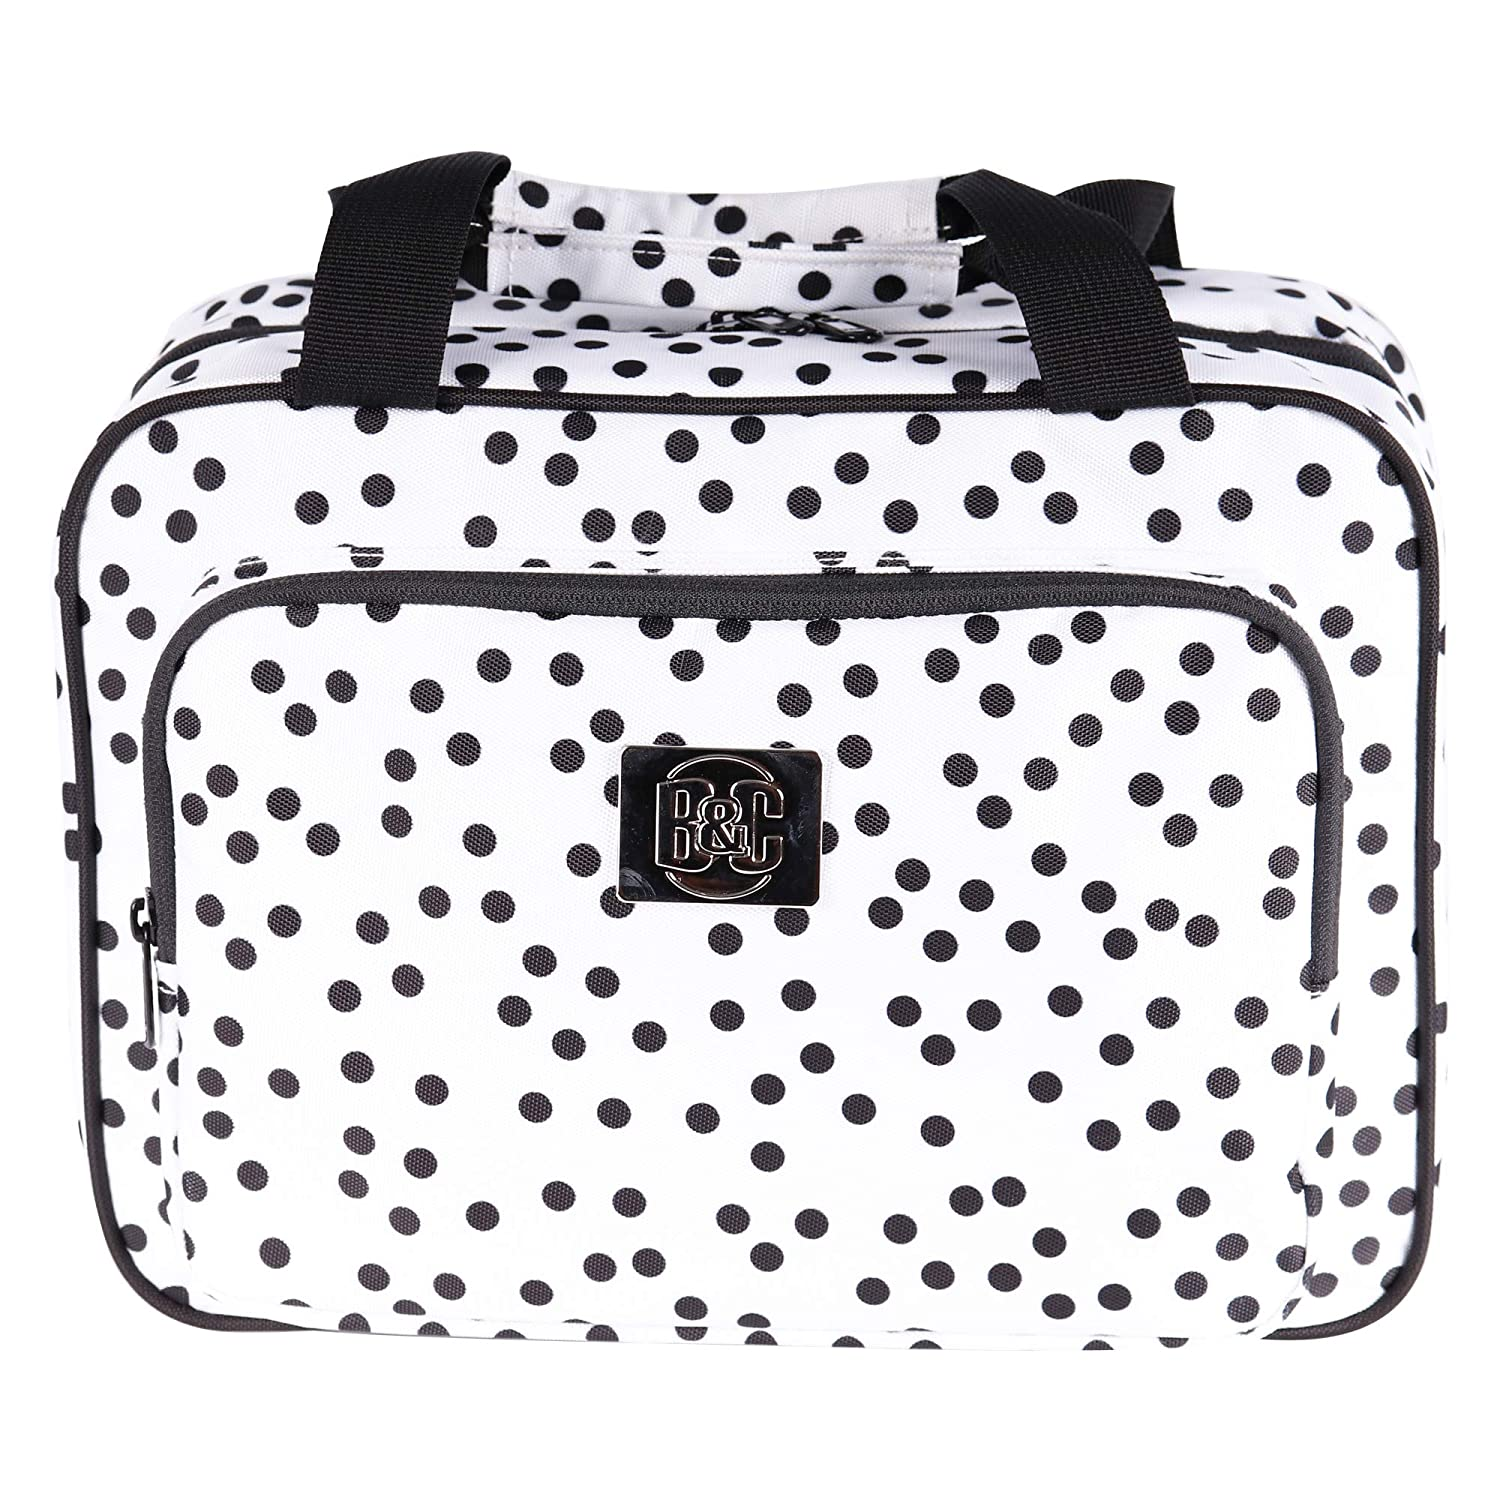 Large Polka Dot Travel Cosmetic Bag – Large Hanging Travel Toiletry And Cosmetic Organizer With Many Pockets white polka dot